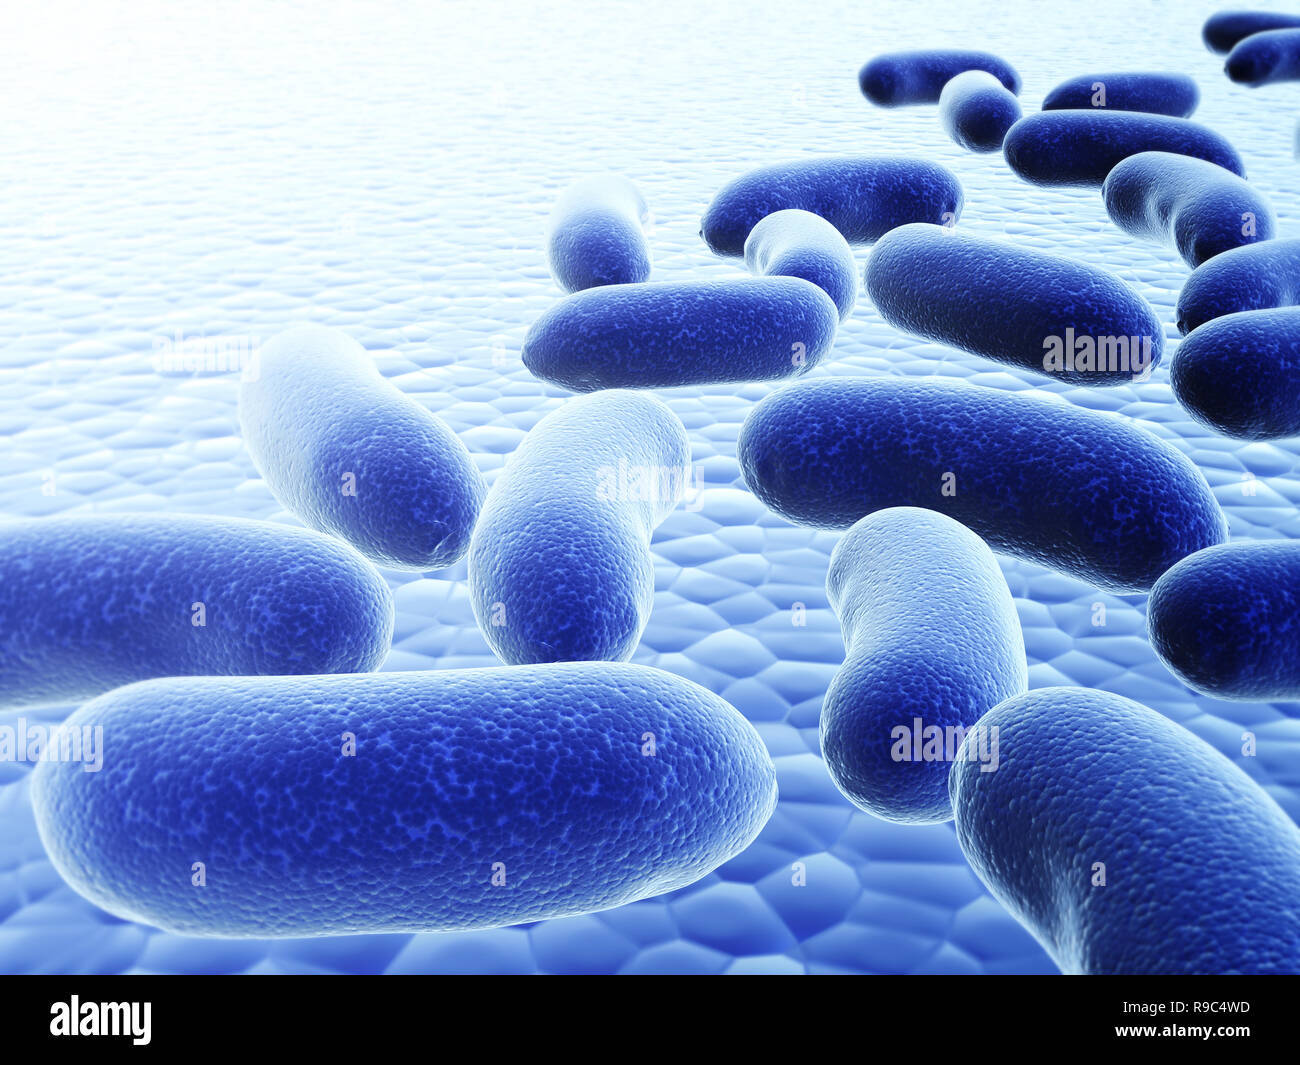 Colony of pathogenic viruses. On blurred background of blue color. 3d render - Stock Image